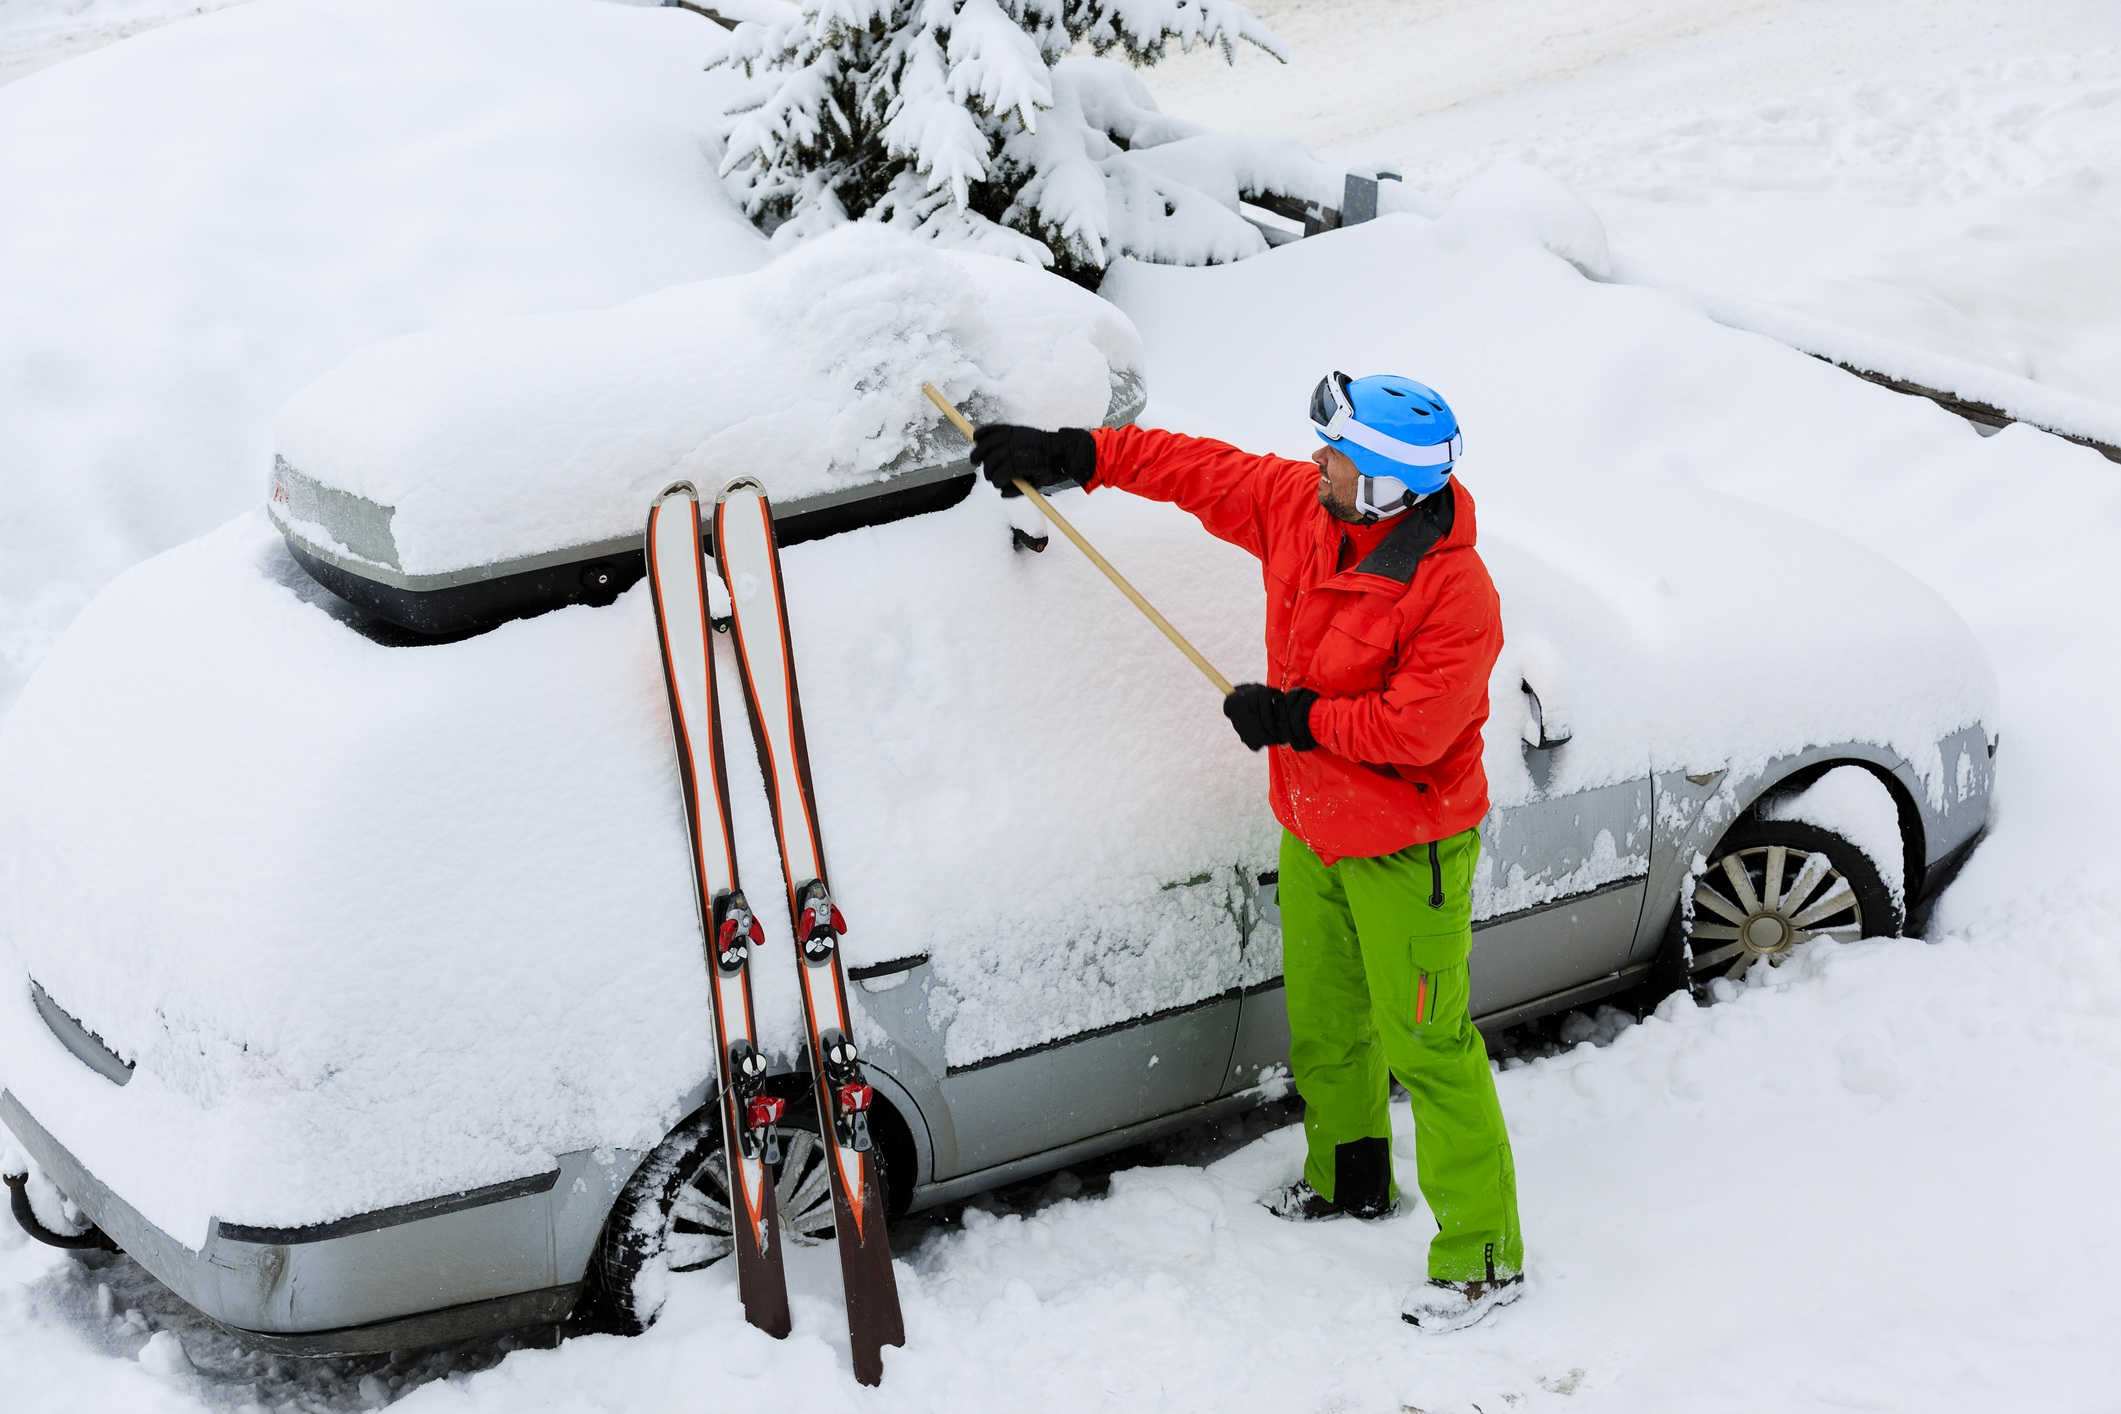 A man clearing snow off his car to go skiing